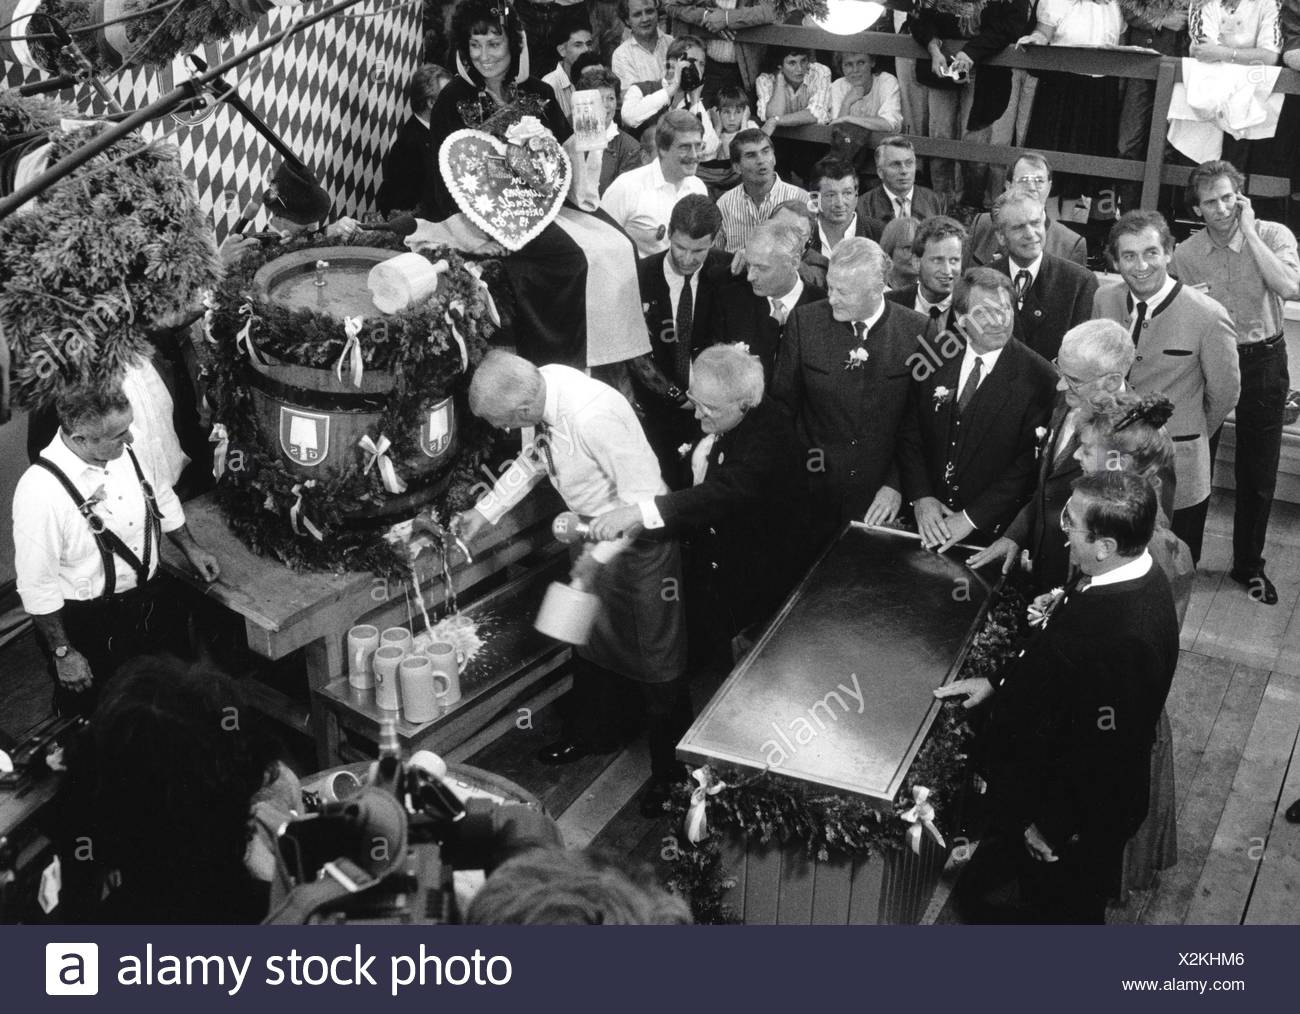 Kronawitter, Georg 21.4.1928 - 28.4.2016, German politician (SPD), scene, Oktoberfest, keg tapping, 1989, with Max Streibl, Winfried Zehetmeier, Klaus Hahnzog, the journalist Michael Stiegler and others, , Additional-Rights-Clearances-NA - Stock Image